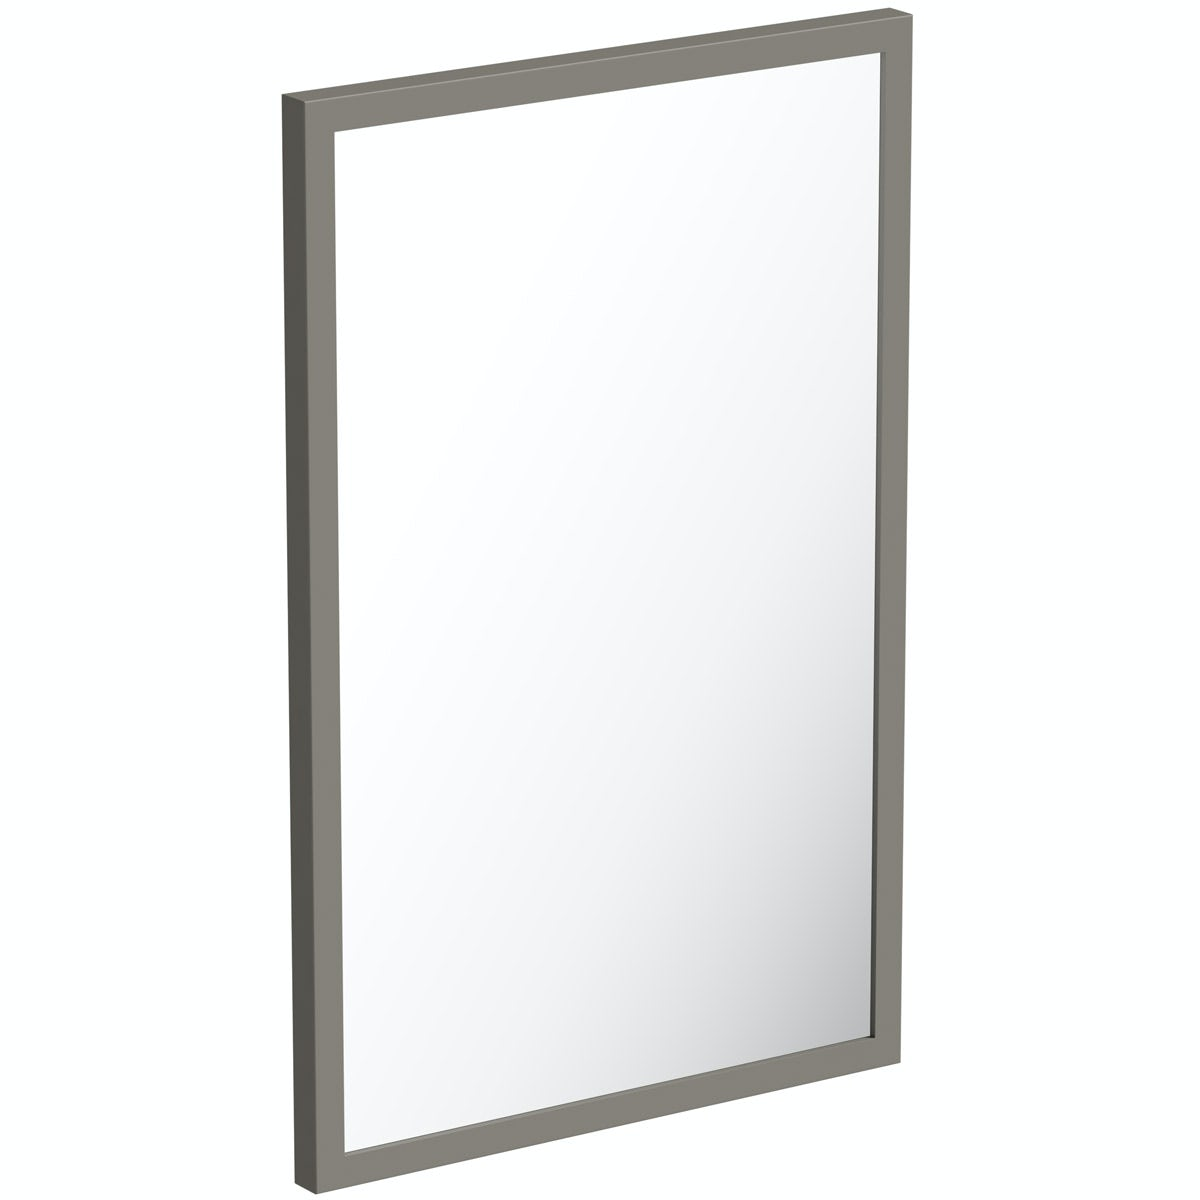 Mode Hale greystone matt mirror 550 x 800mm